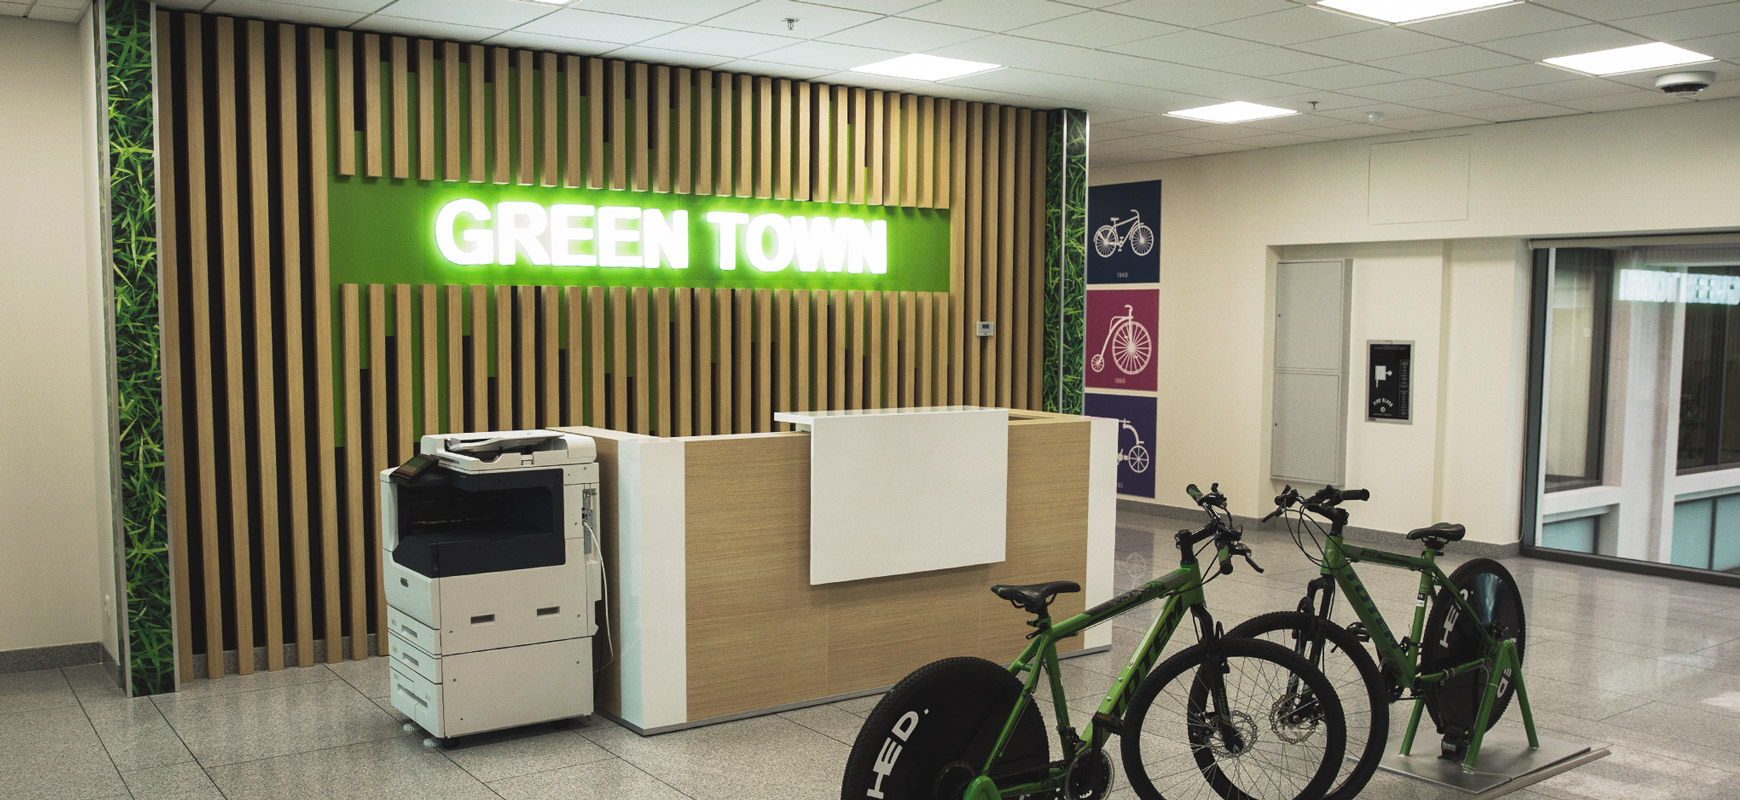 Ameriabank reception area sign with illumination made of acrylic and wood for interior design